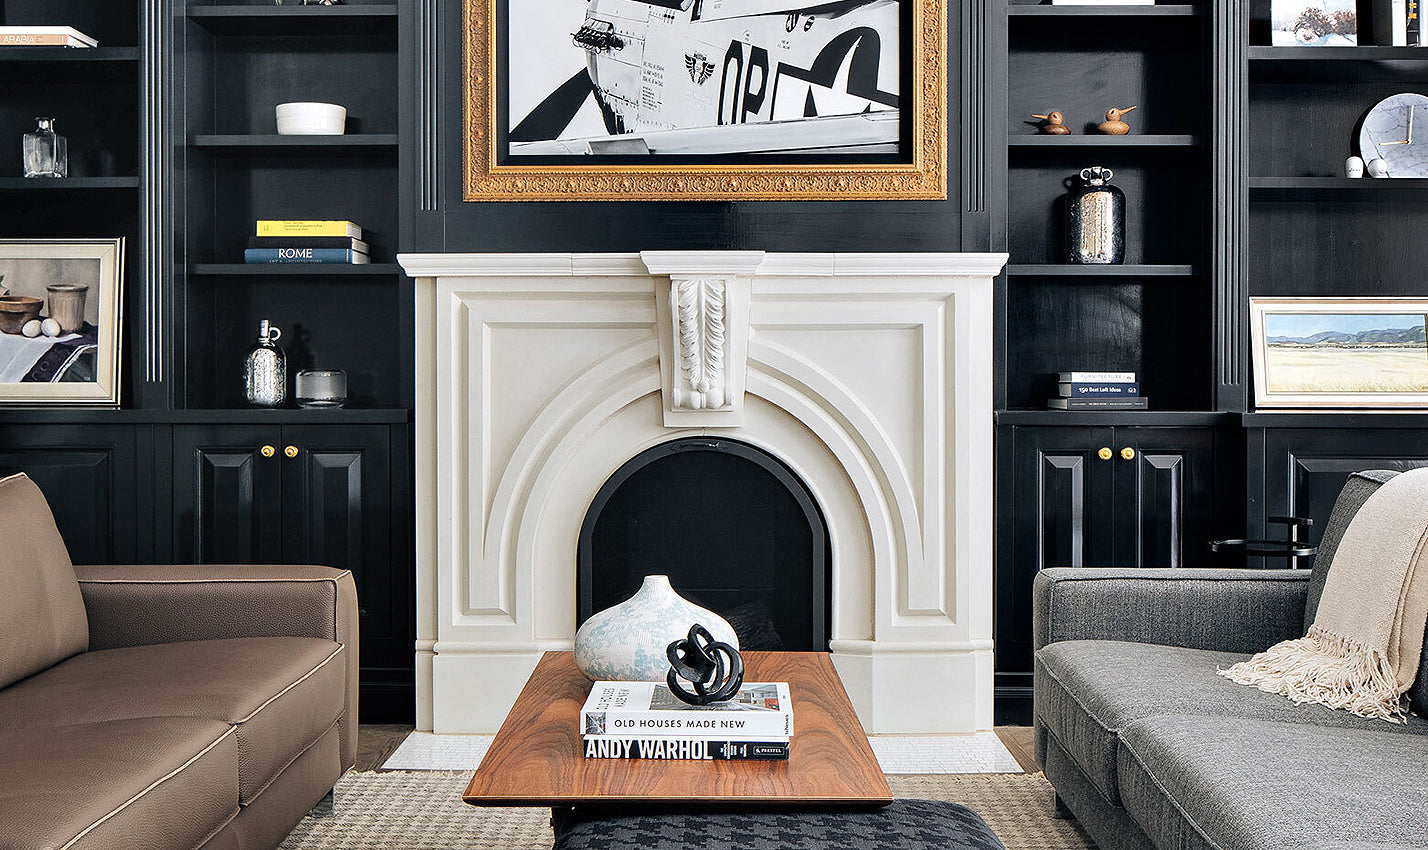 A deeply hued living room featuring a fireplace/Photographer: Stoffer Photography Interiors/ Benjamin Moore's Twilight Zone paint highlights enviable crown molding in this sitting room designed by Abbie Anderson Design.